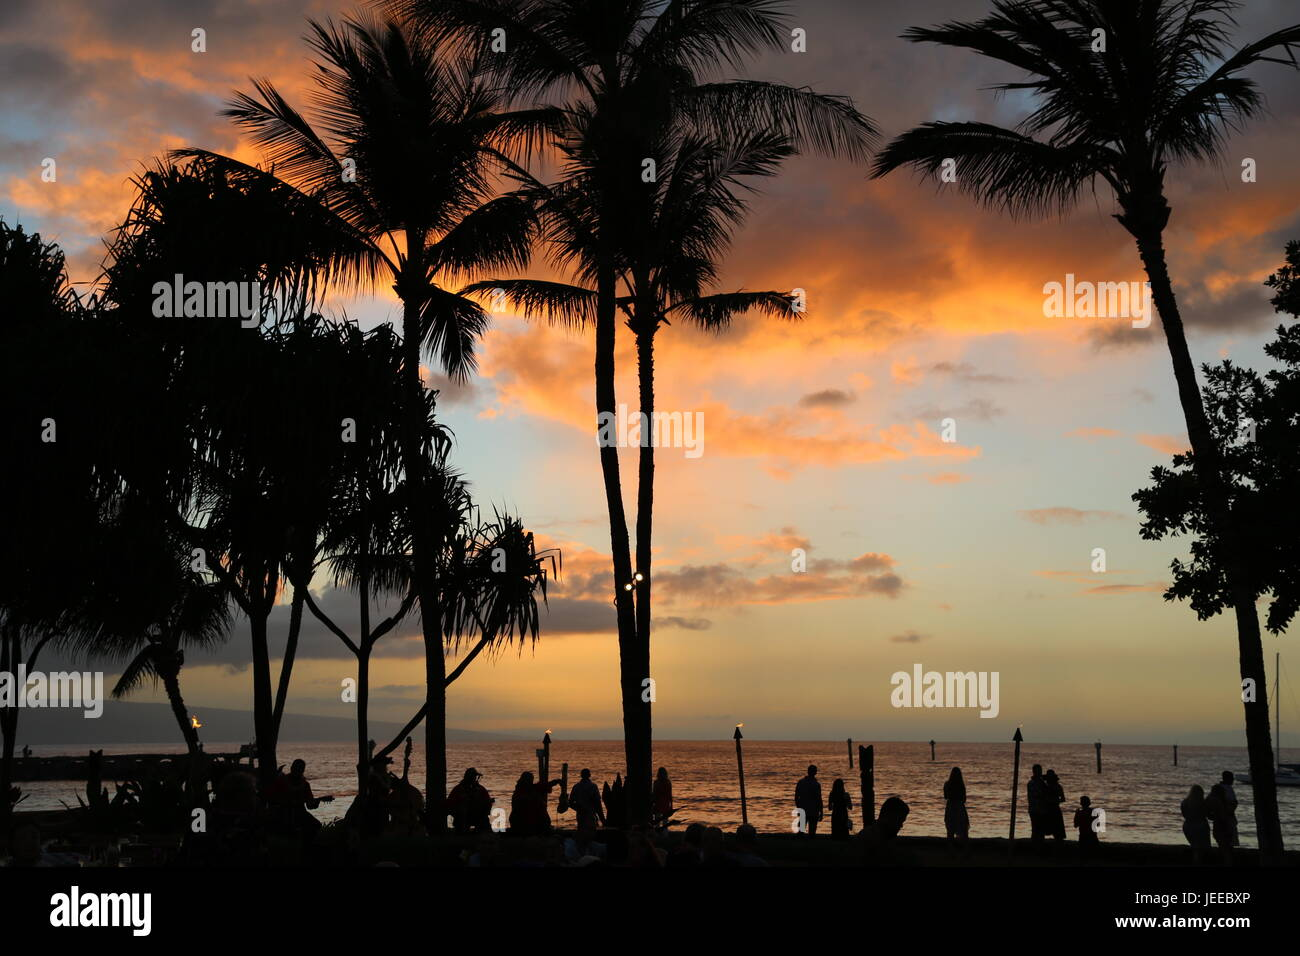 Luau Sunset - Stock Image